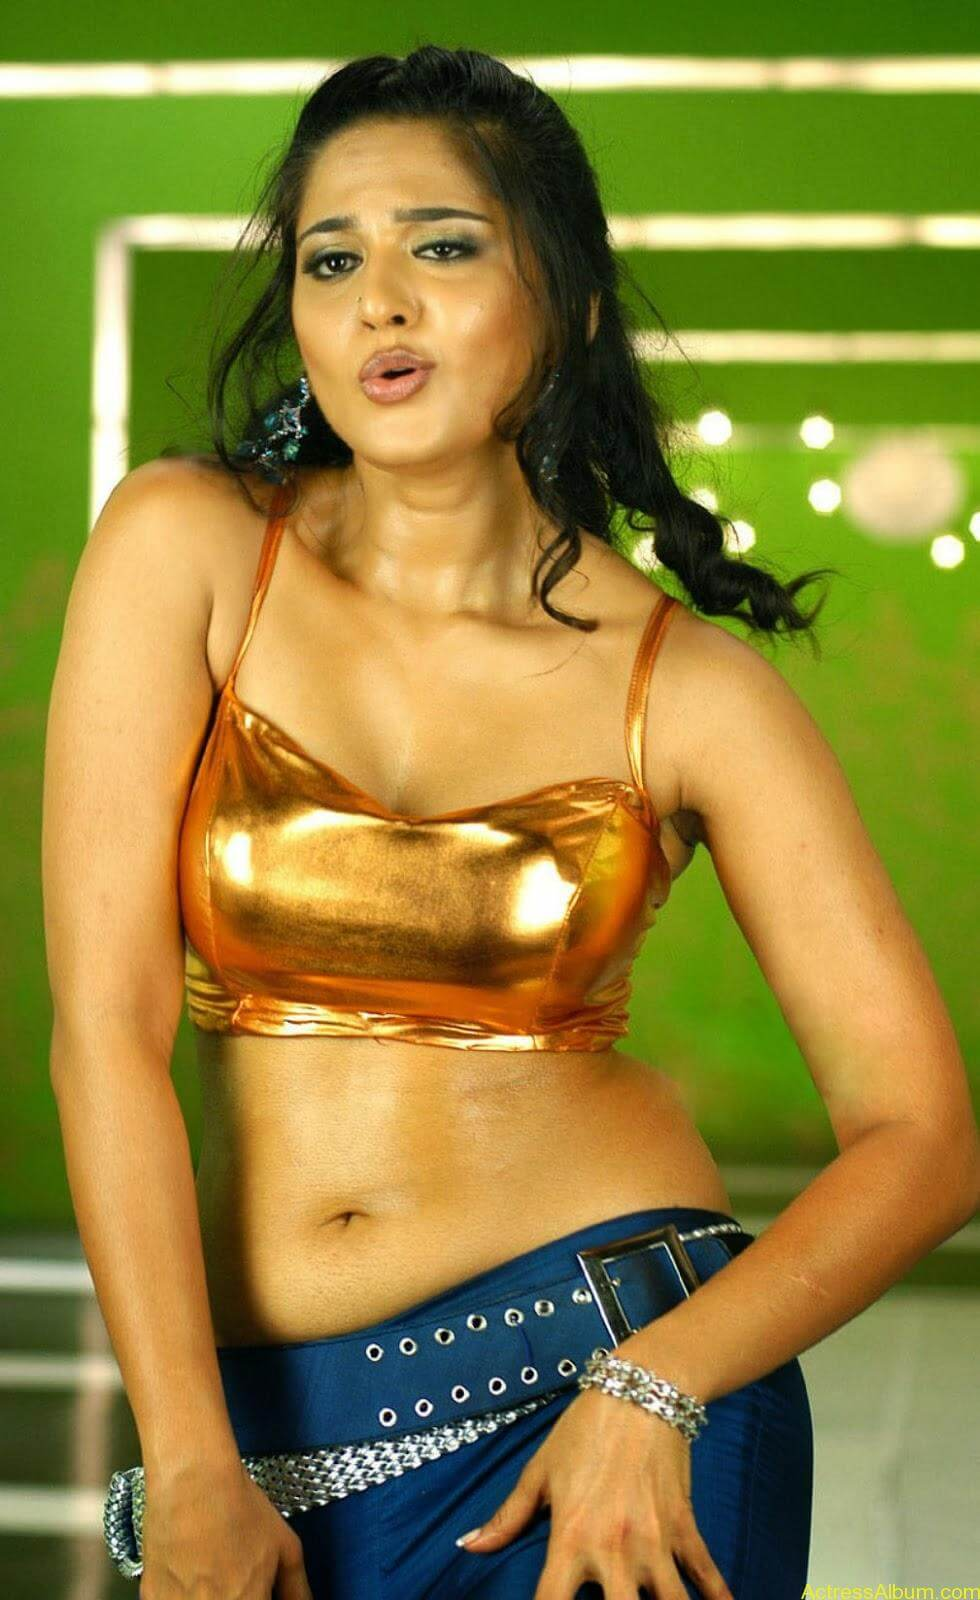 Cute Indian Actress Hd Wallpapers Anushka Shetty Sexy In Hot Golden Dress Actress Album